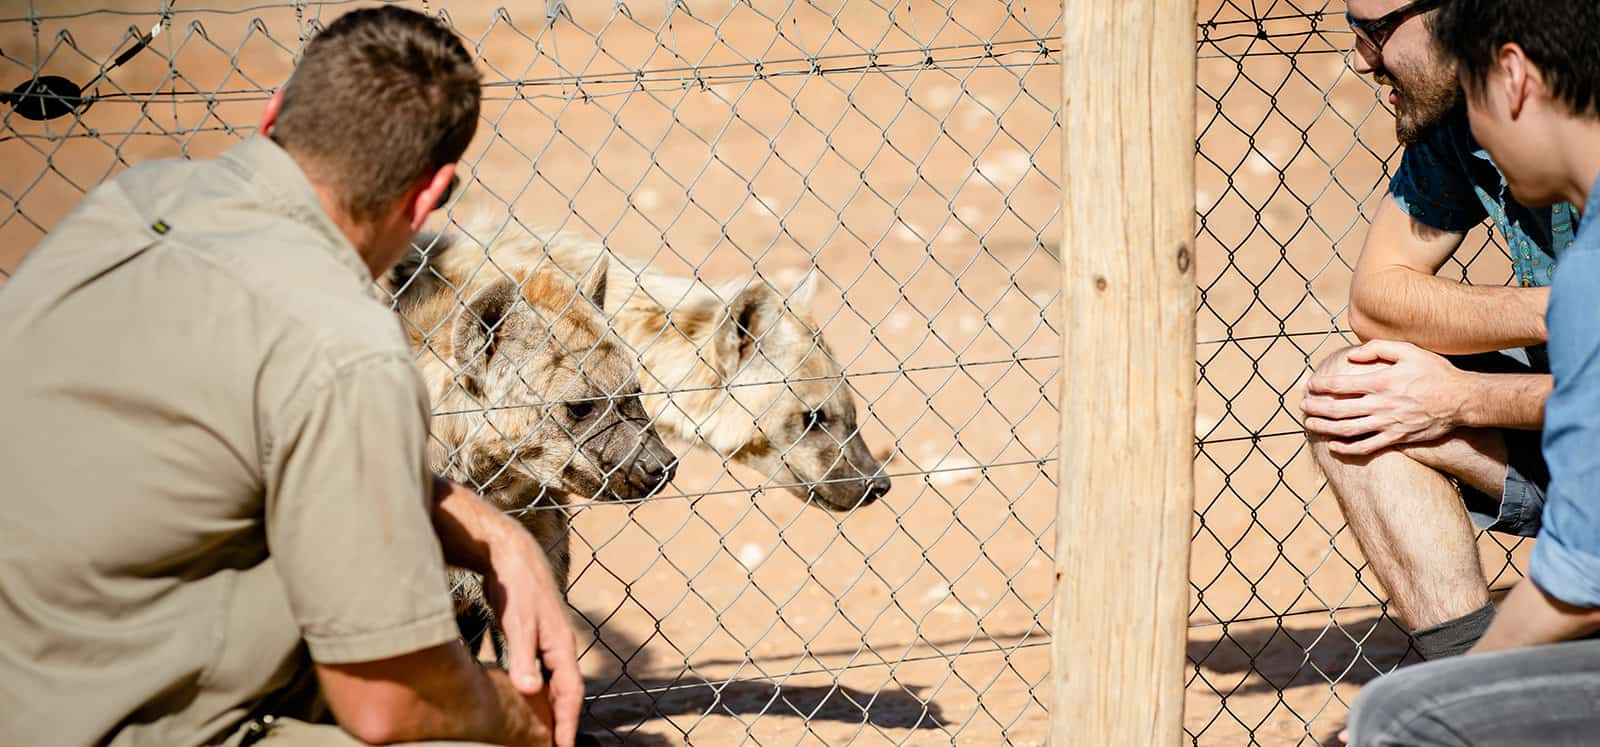 Man watching Spotted Hyena through mesh during Lions at Bedtime experience